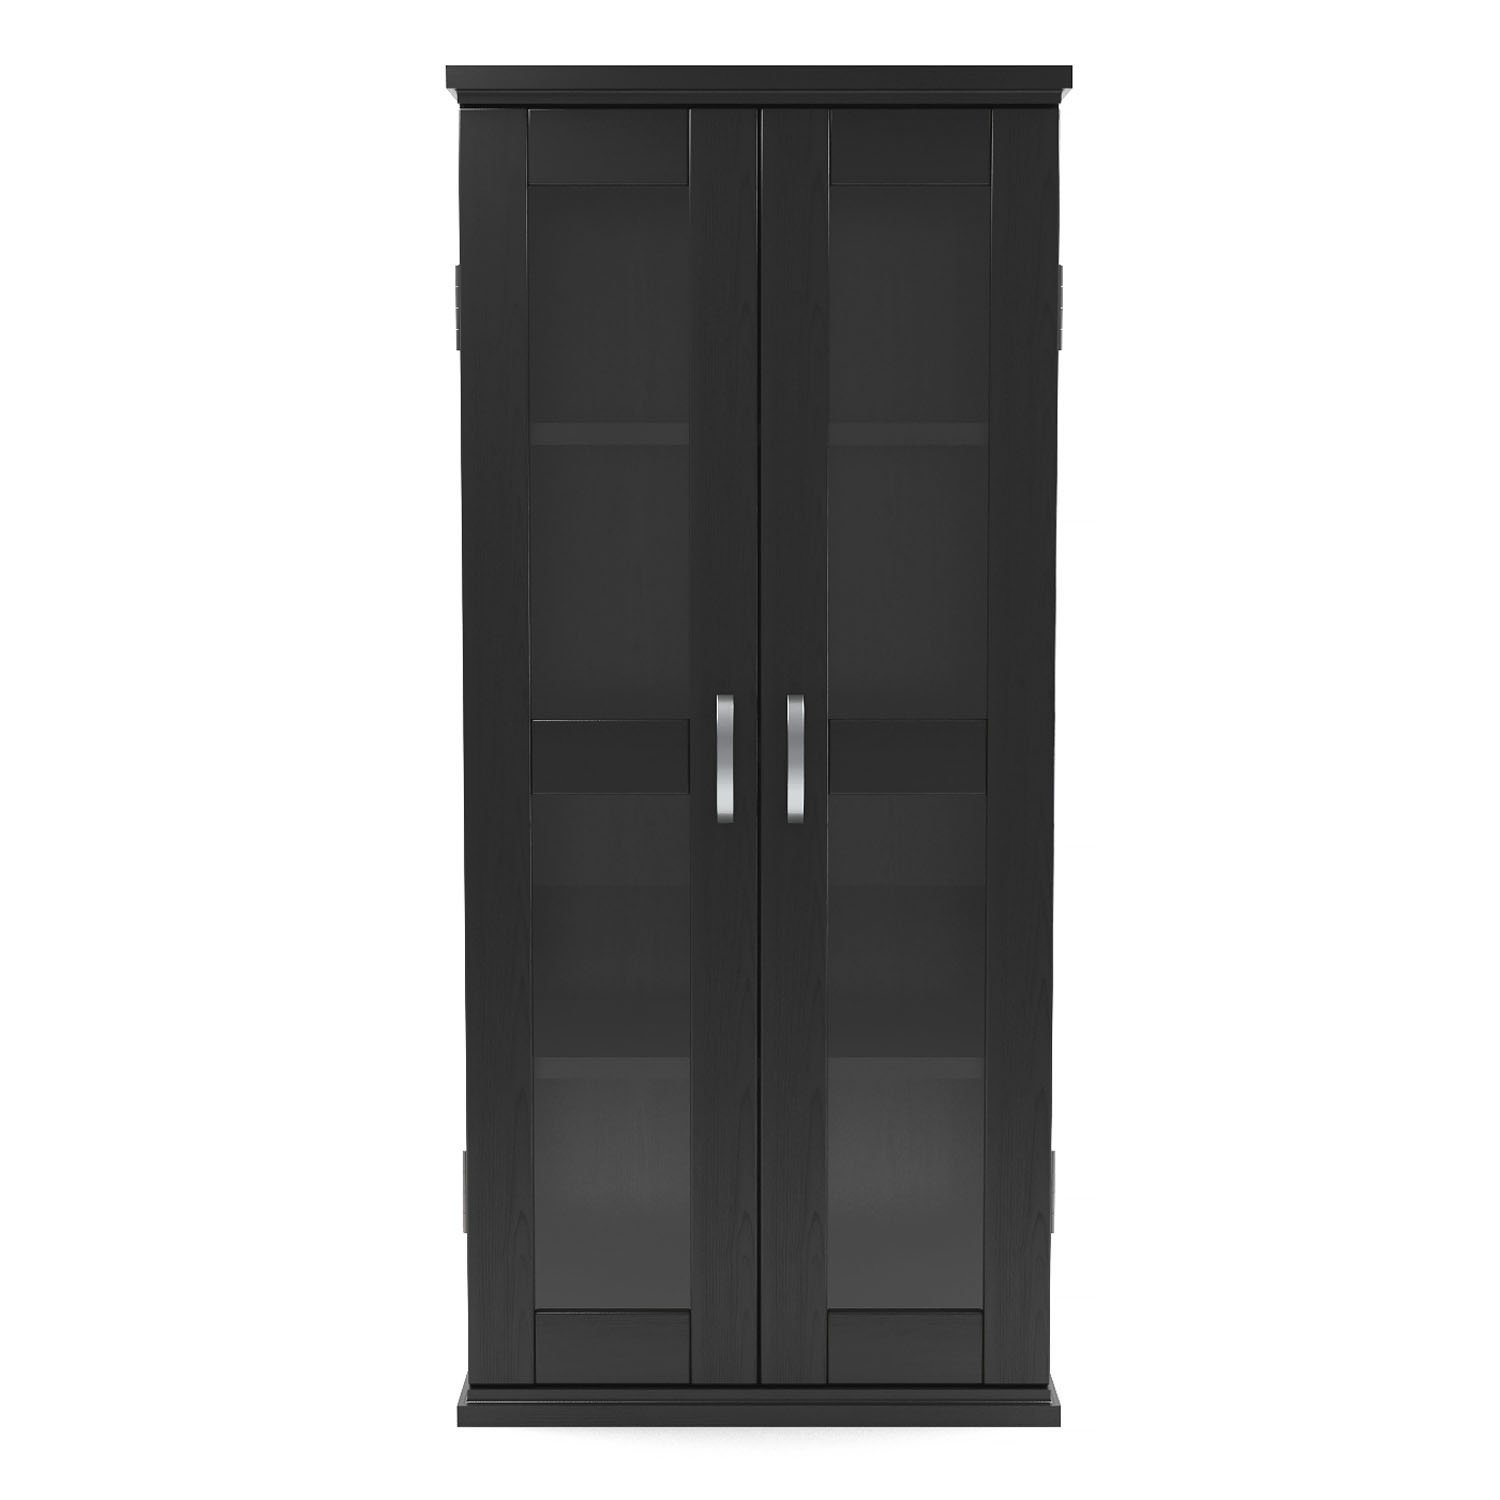 Gibson Living Kirkwell 41 Inch Wood DVD Tower in Black